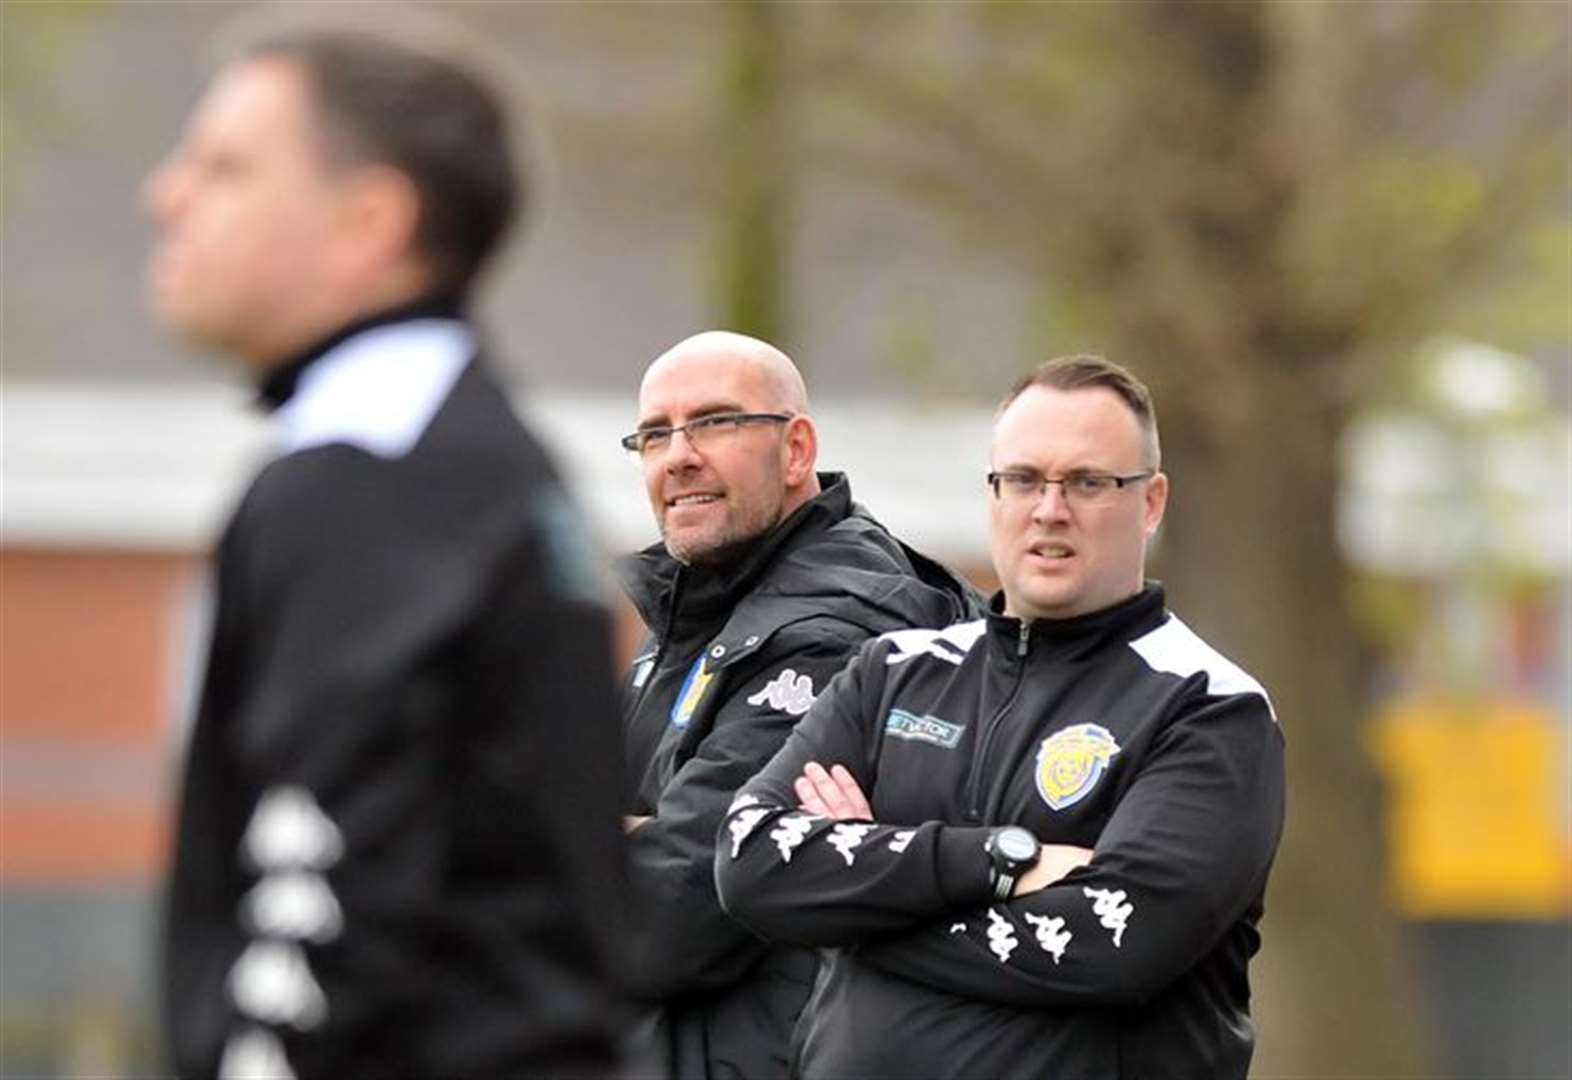 FOOTBALL: Tulips' acting manager Thorogood rallies club after shock resignation